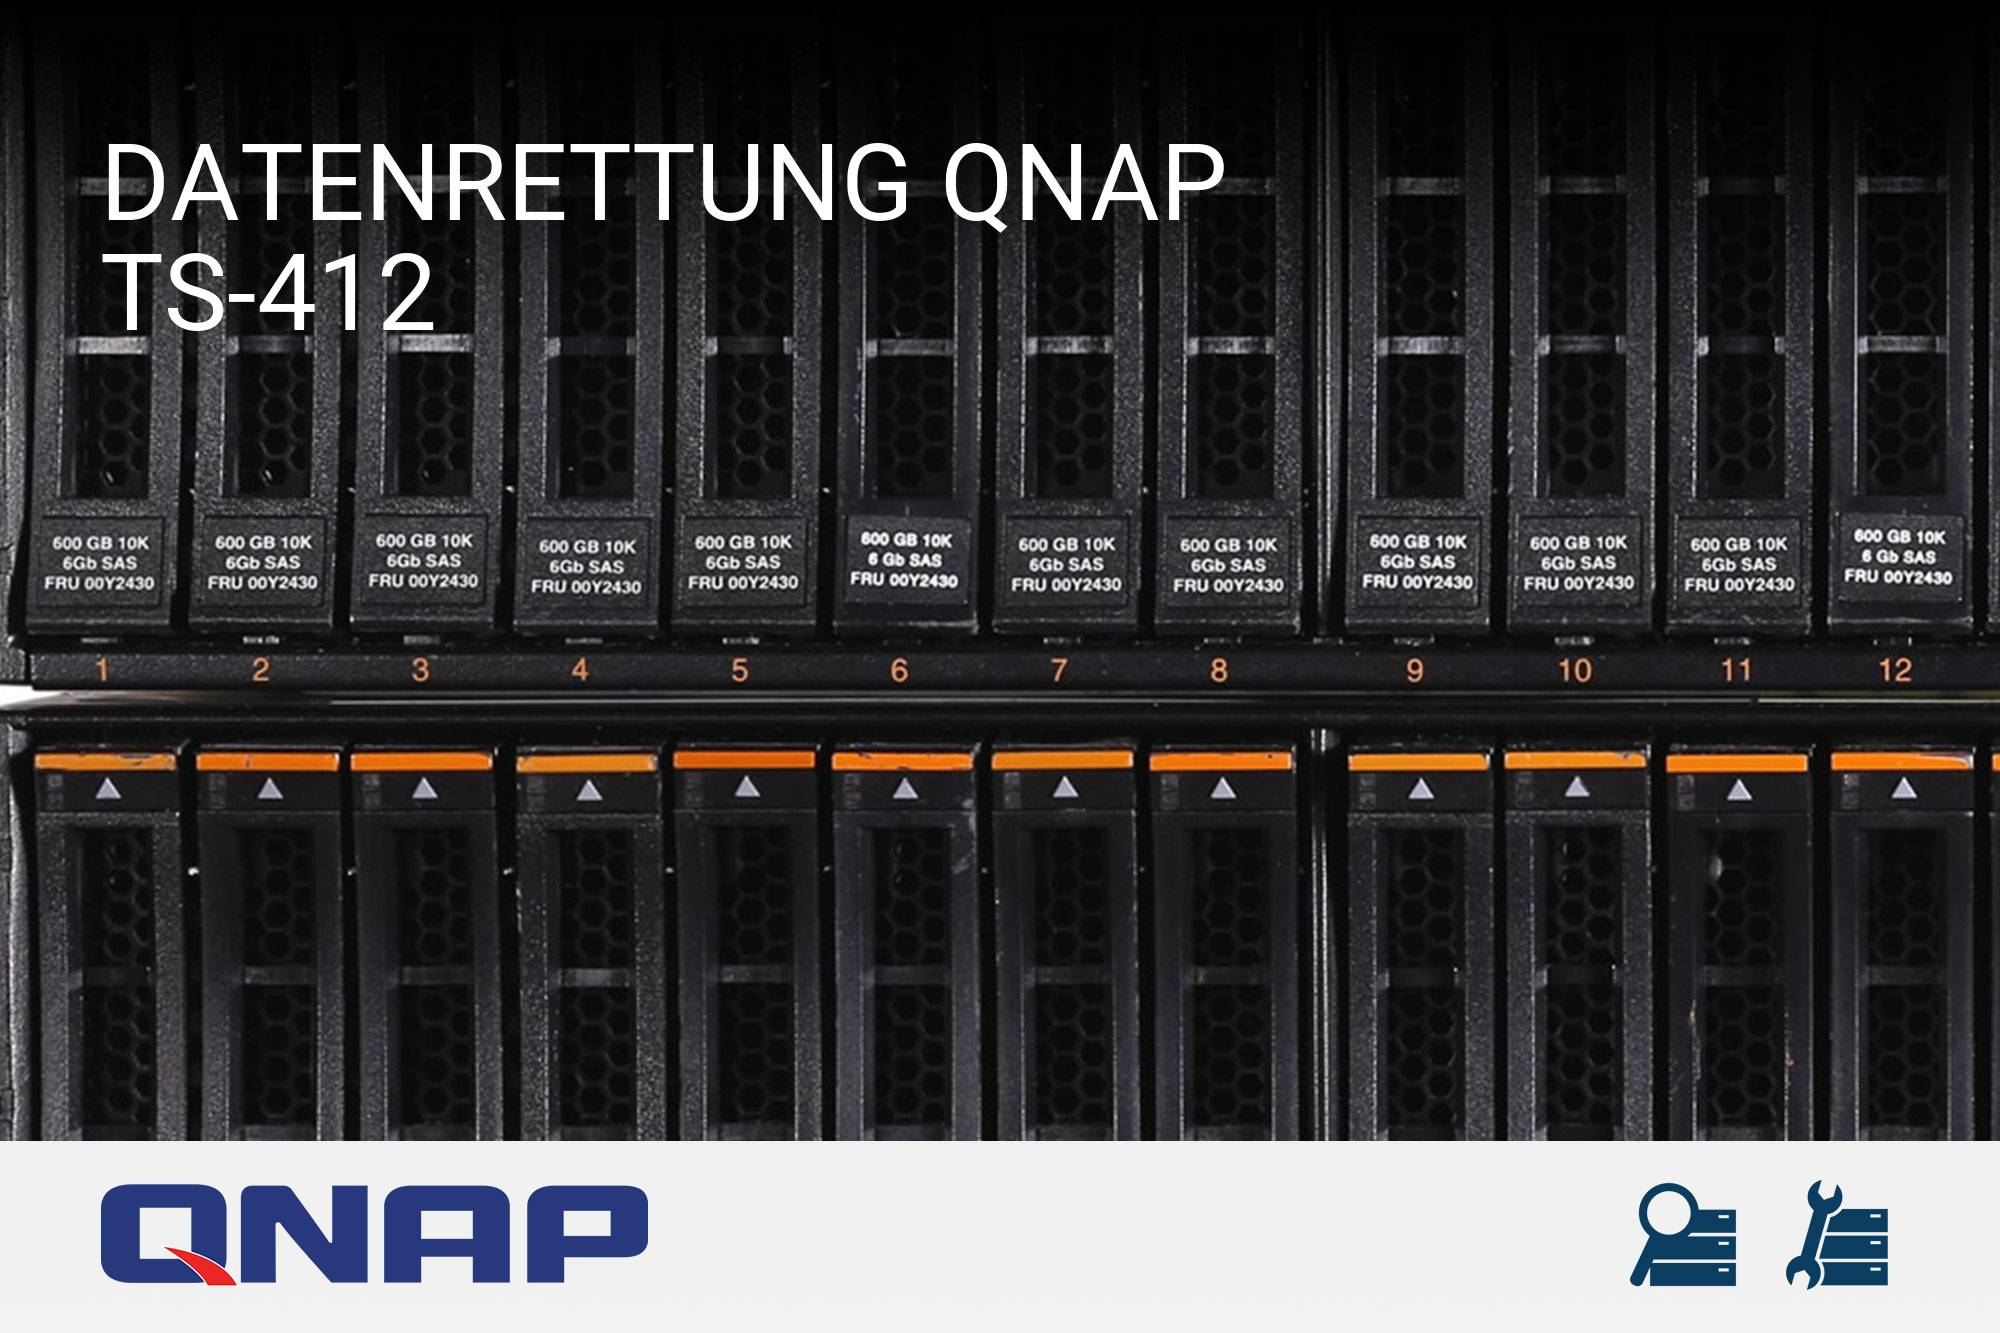 datenrettung qnap turbostation ts 412 server recovery. Black Bedroom Furniture Sets. Home Design Ideas